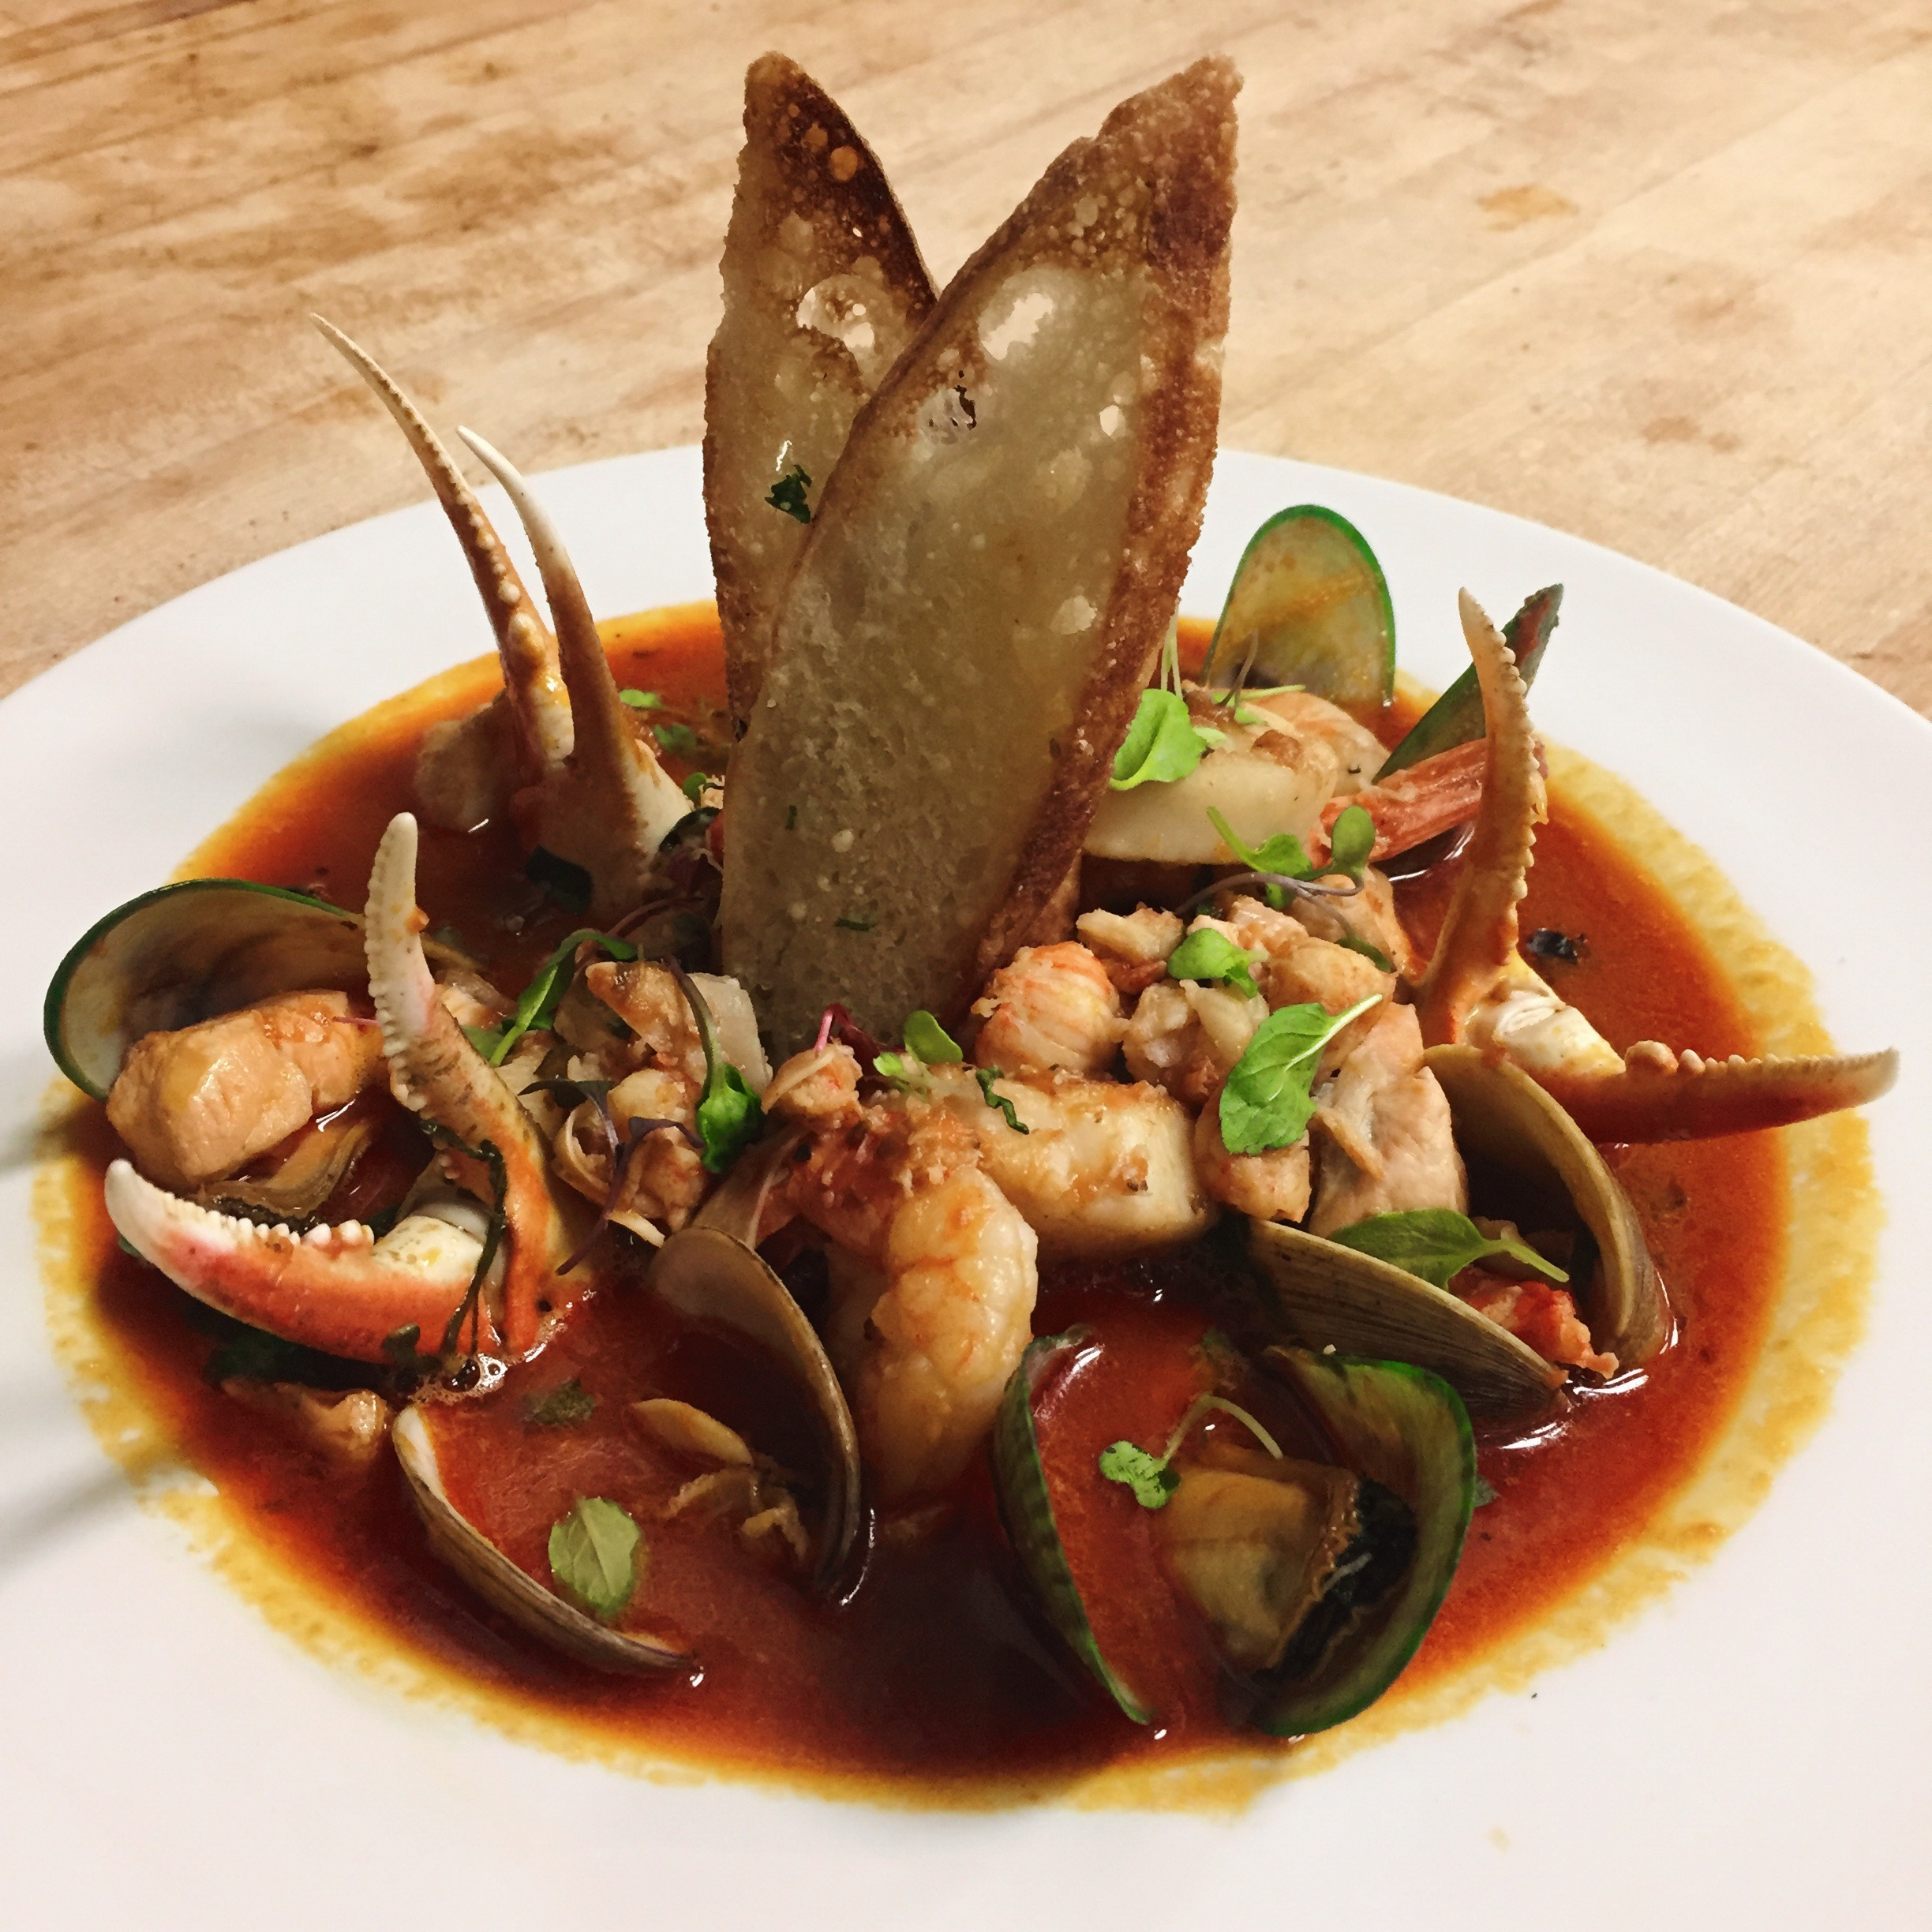 Shrimp, clams, crab claws, fresh catch of the day in a tomato brodetto, with toasted crostini